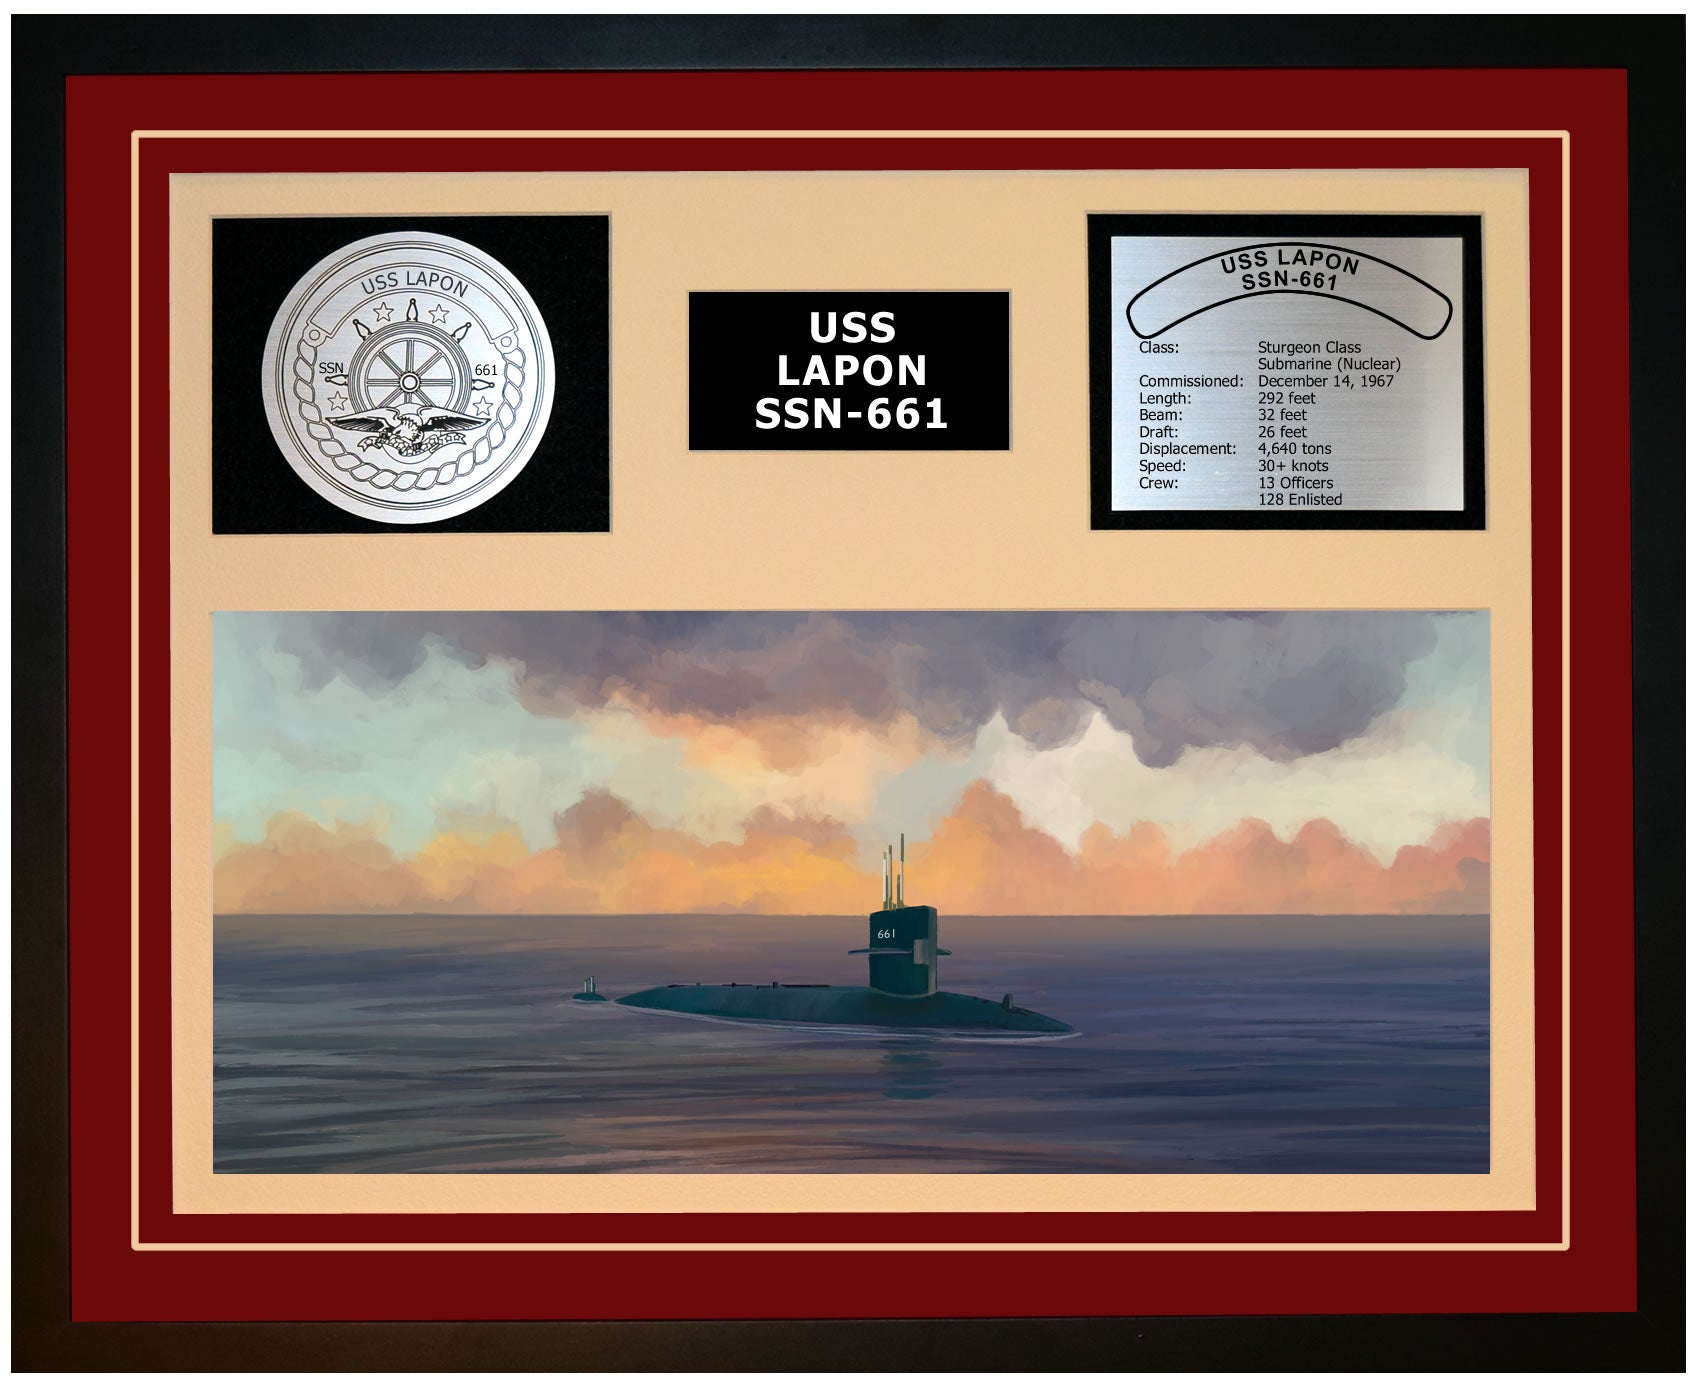 USS LAPON SSN-661 Framed Navy Ship Display Burgundy